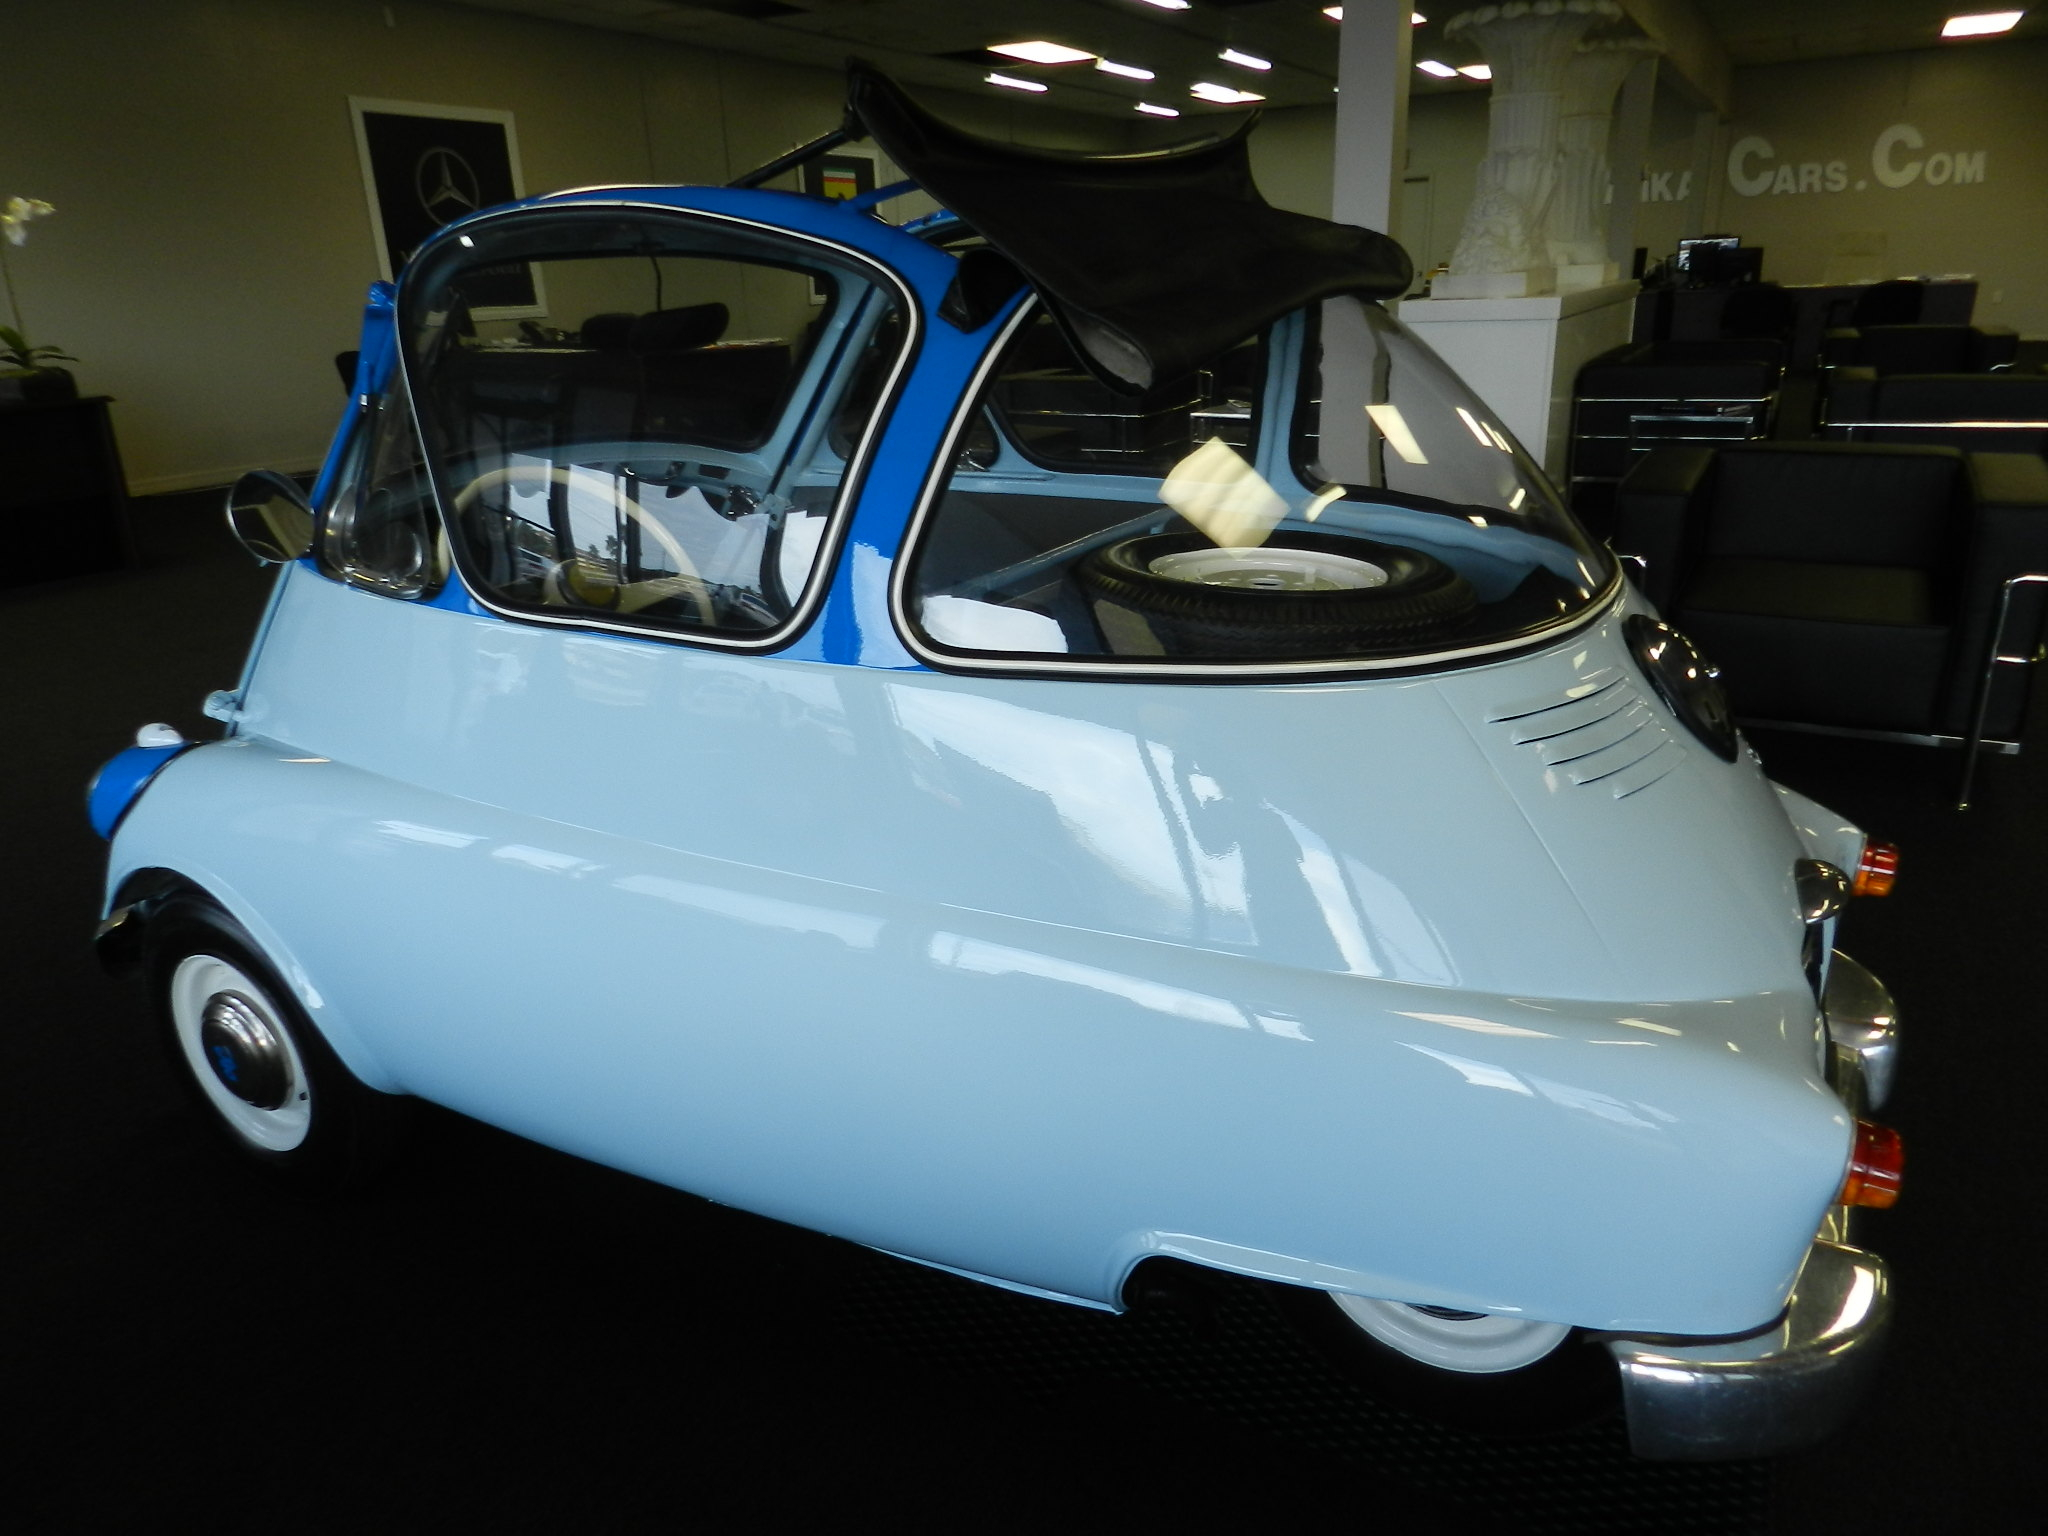 1958 iso isetta micro car for sale photos technical specifications description. Black Bedroom Furniture Sets. Home Design Ideas